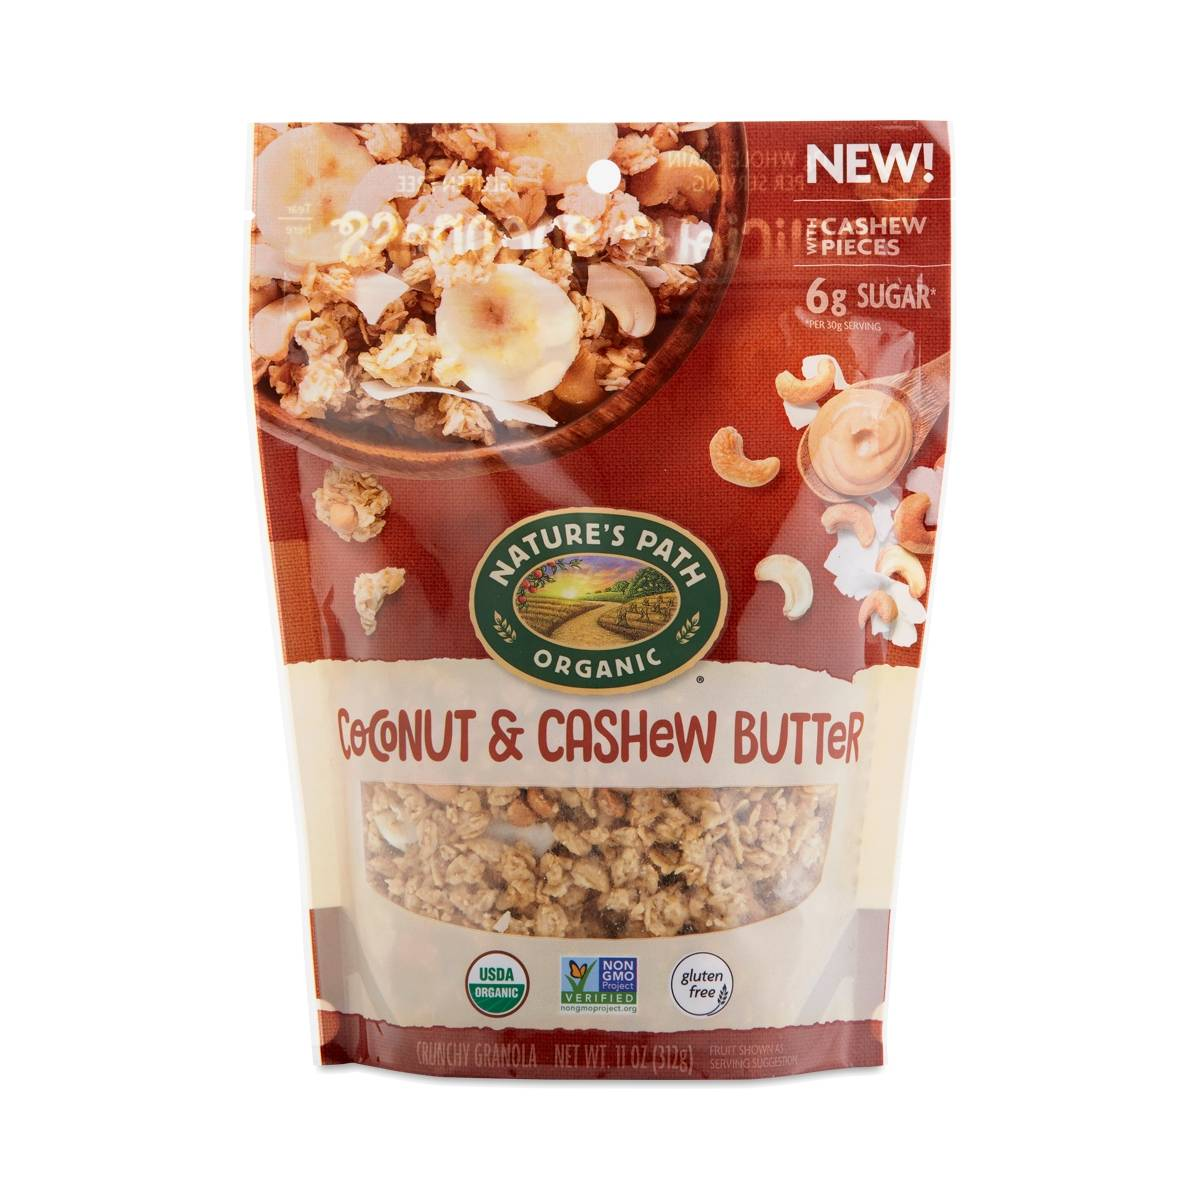 Nature's Path Coconut & Cashew Butter Granola